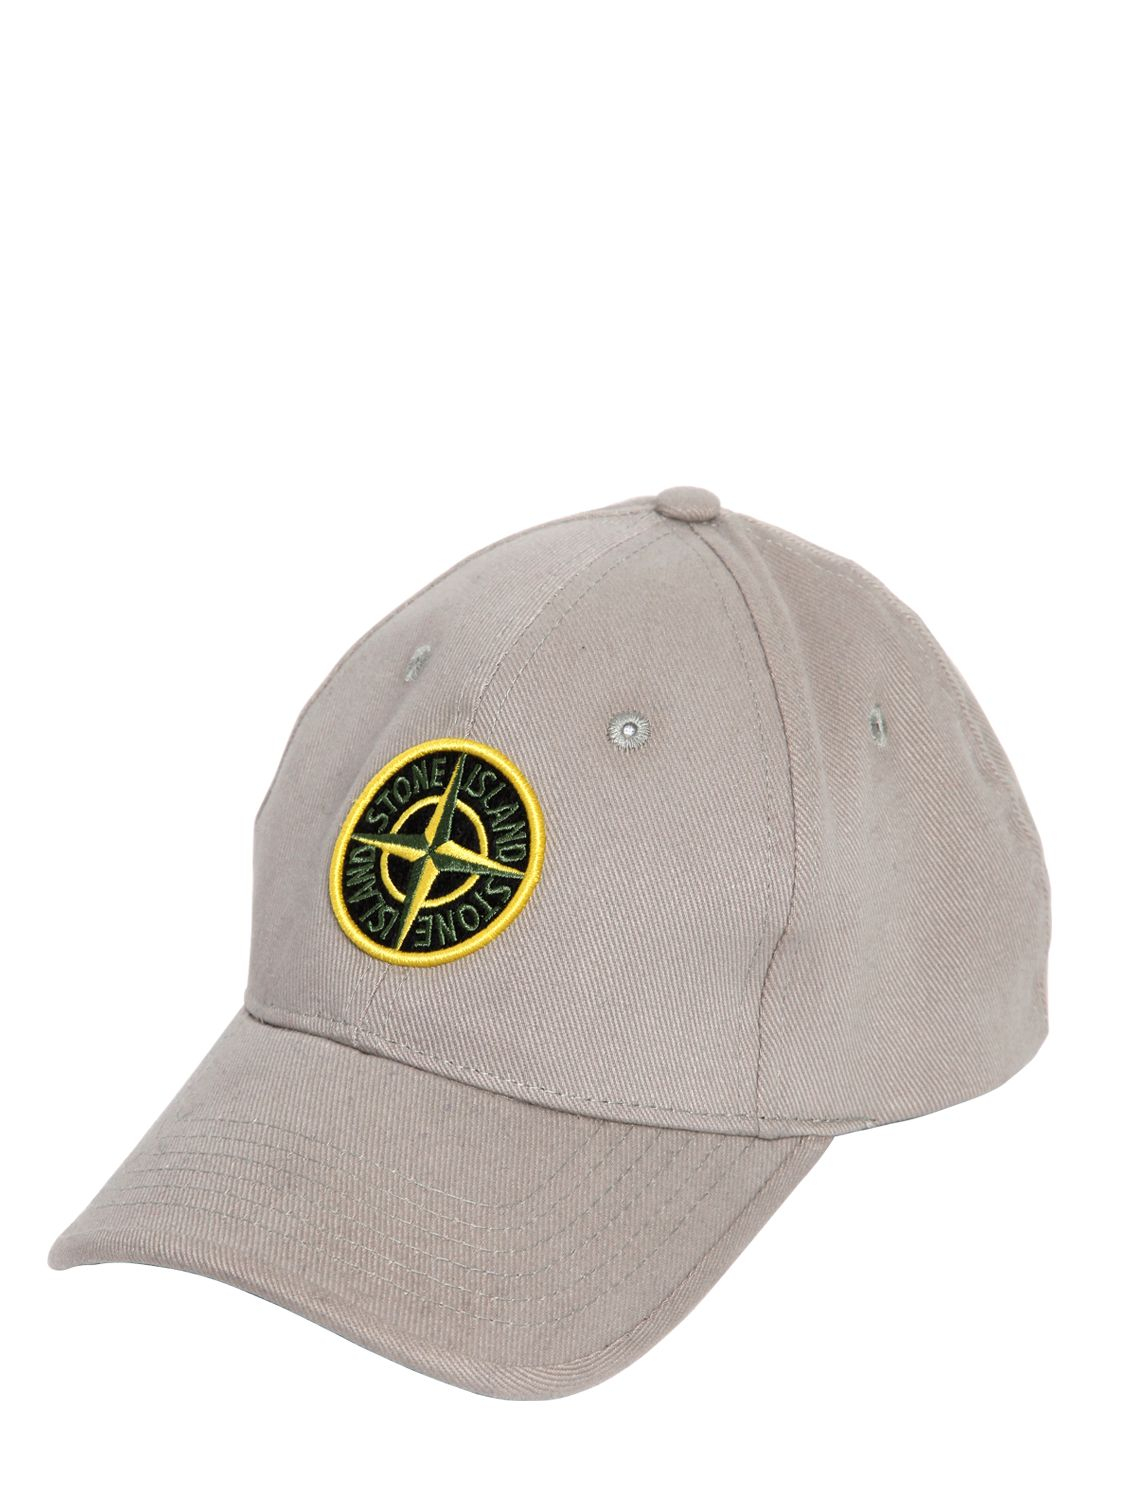 Stone Island Cotton Canvas Baseball Hat in Natural for Men - Lyst b339f357bb5f